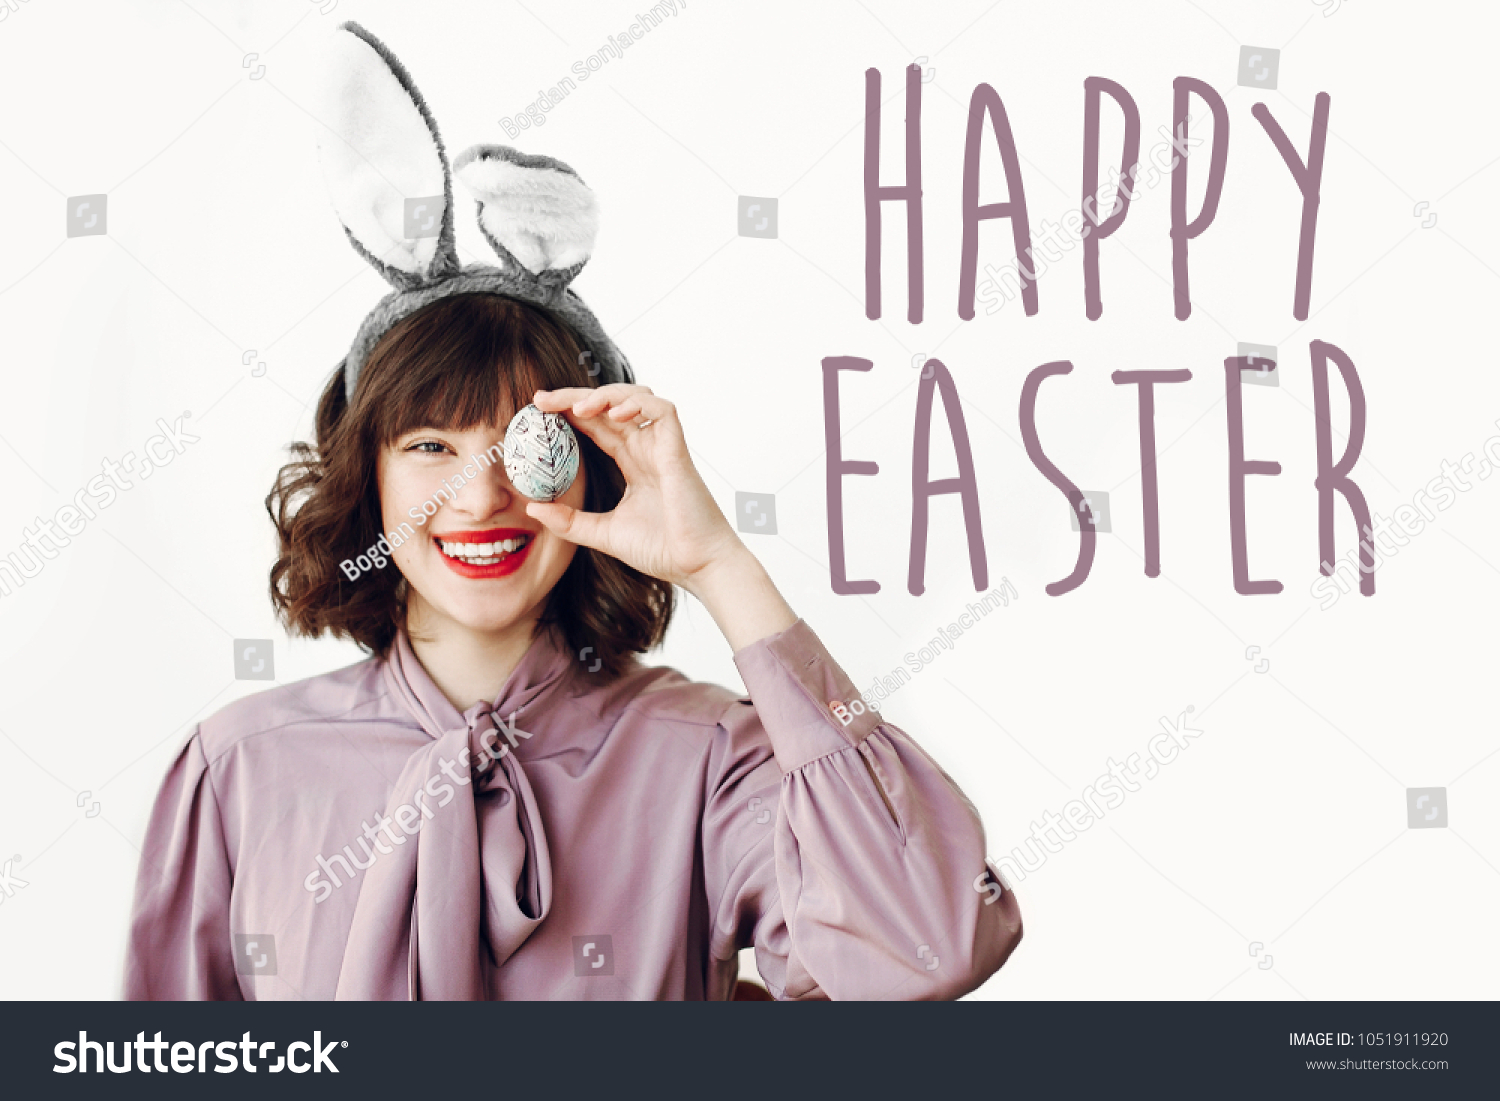 Happy Easter Text Seasons Greetings Card Stock Photo Edit Now